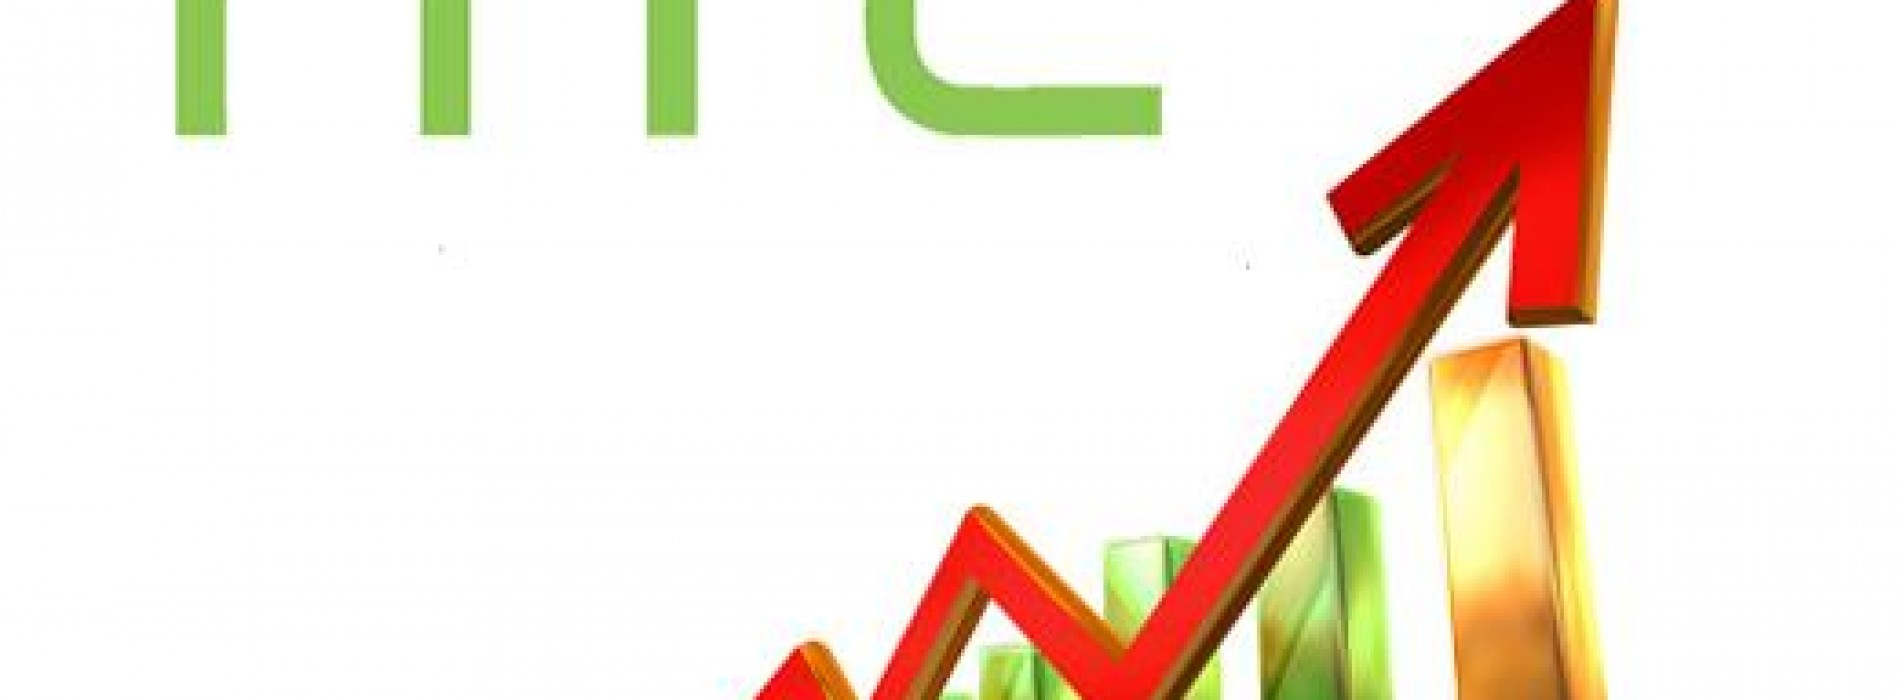 HTC to face a tough time in Q3 considering other big players are about to showcase their smartphone offerings